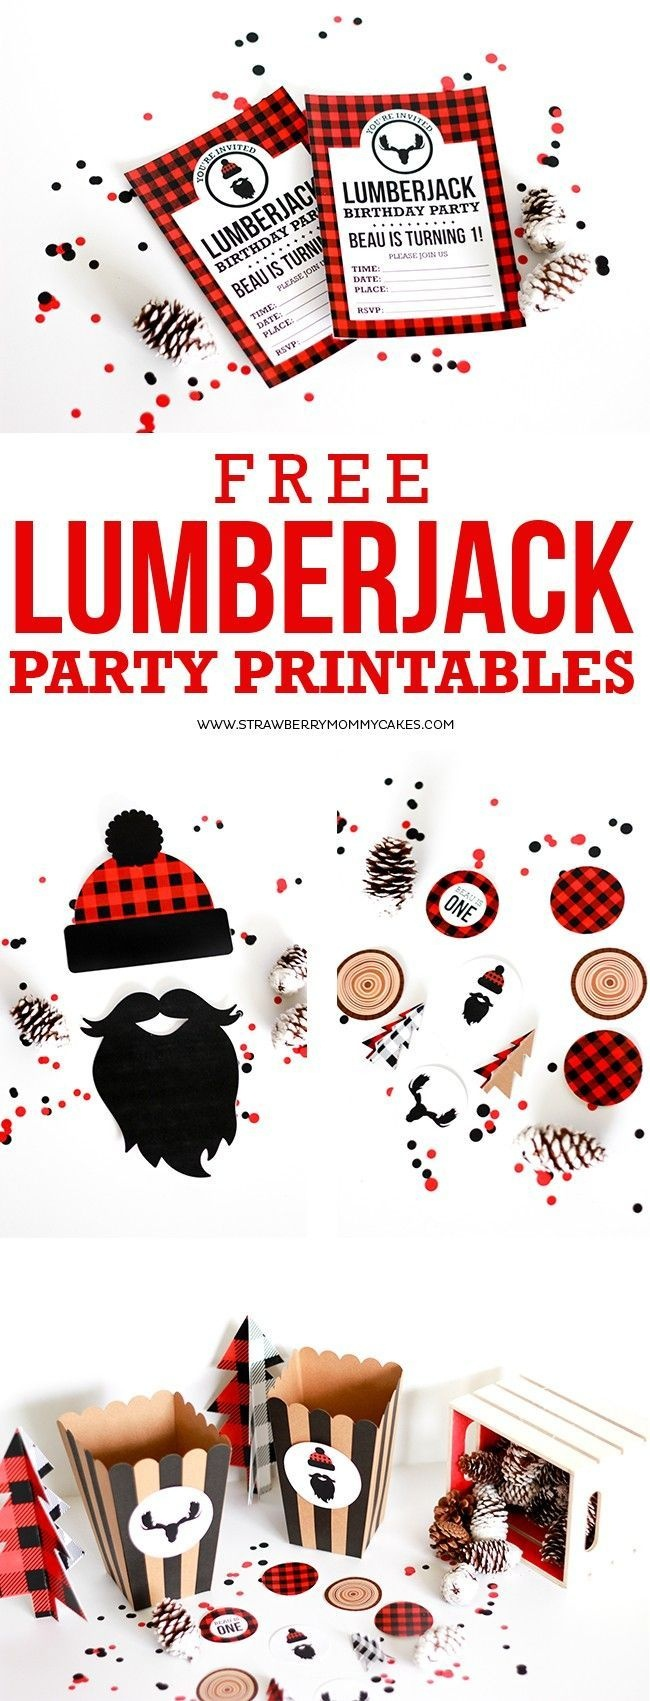 Download These Free Lumberjack Party Printables | Let's Celebrate - Lumberjack Printables Free